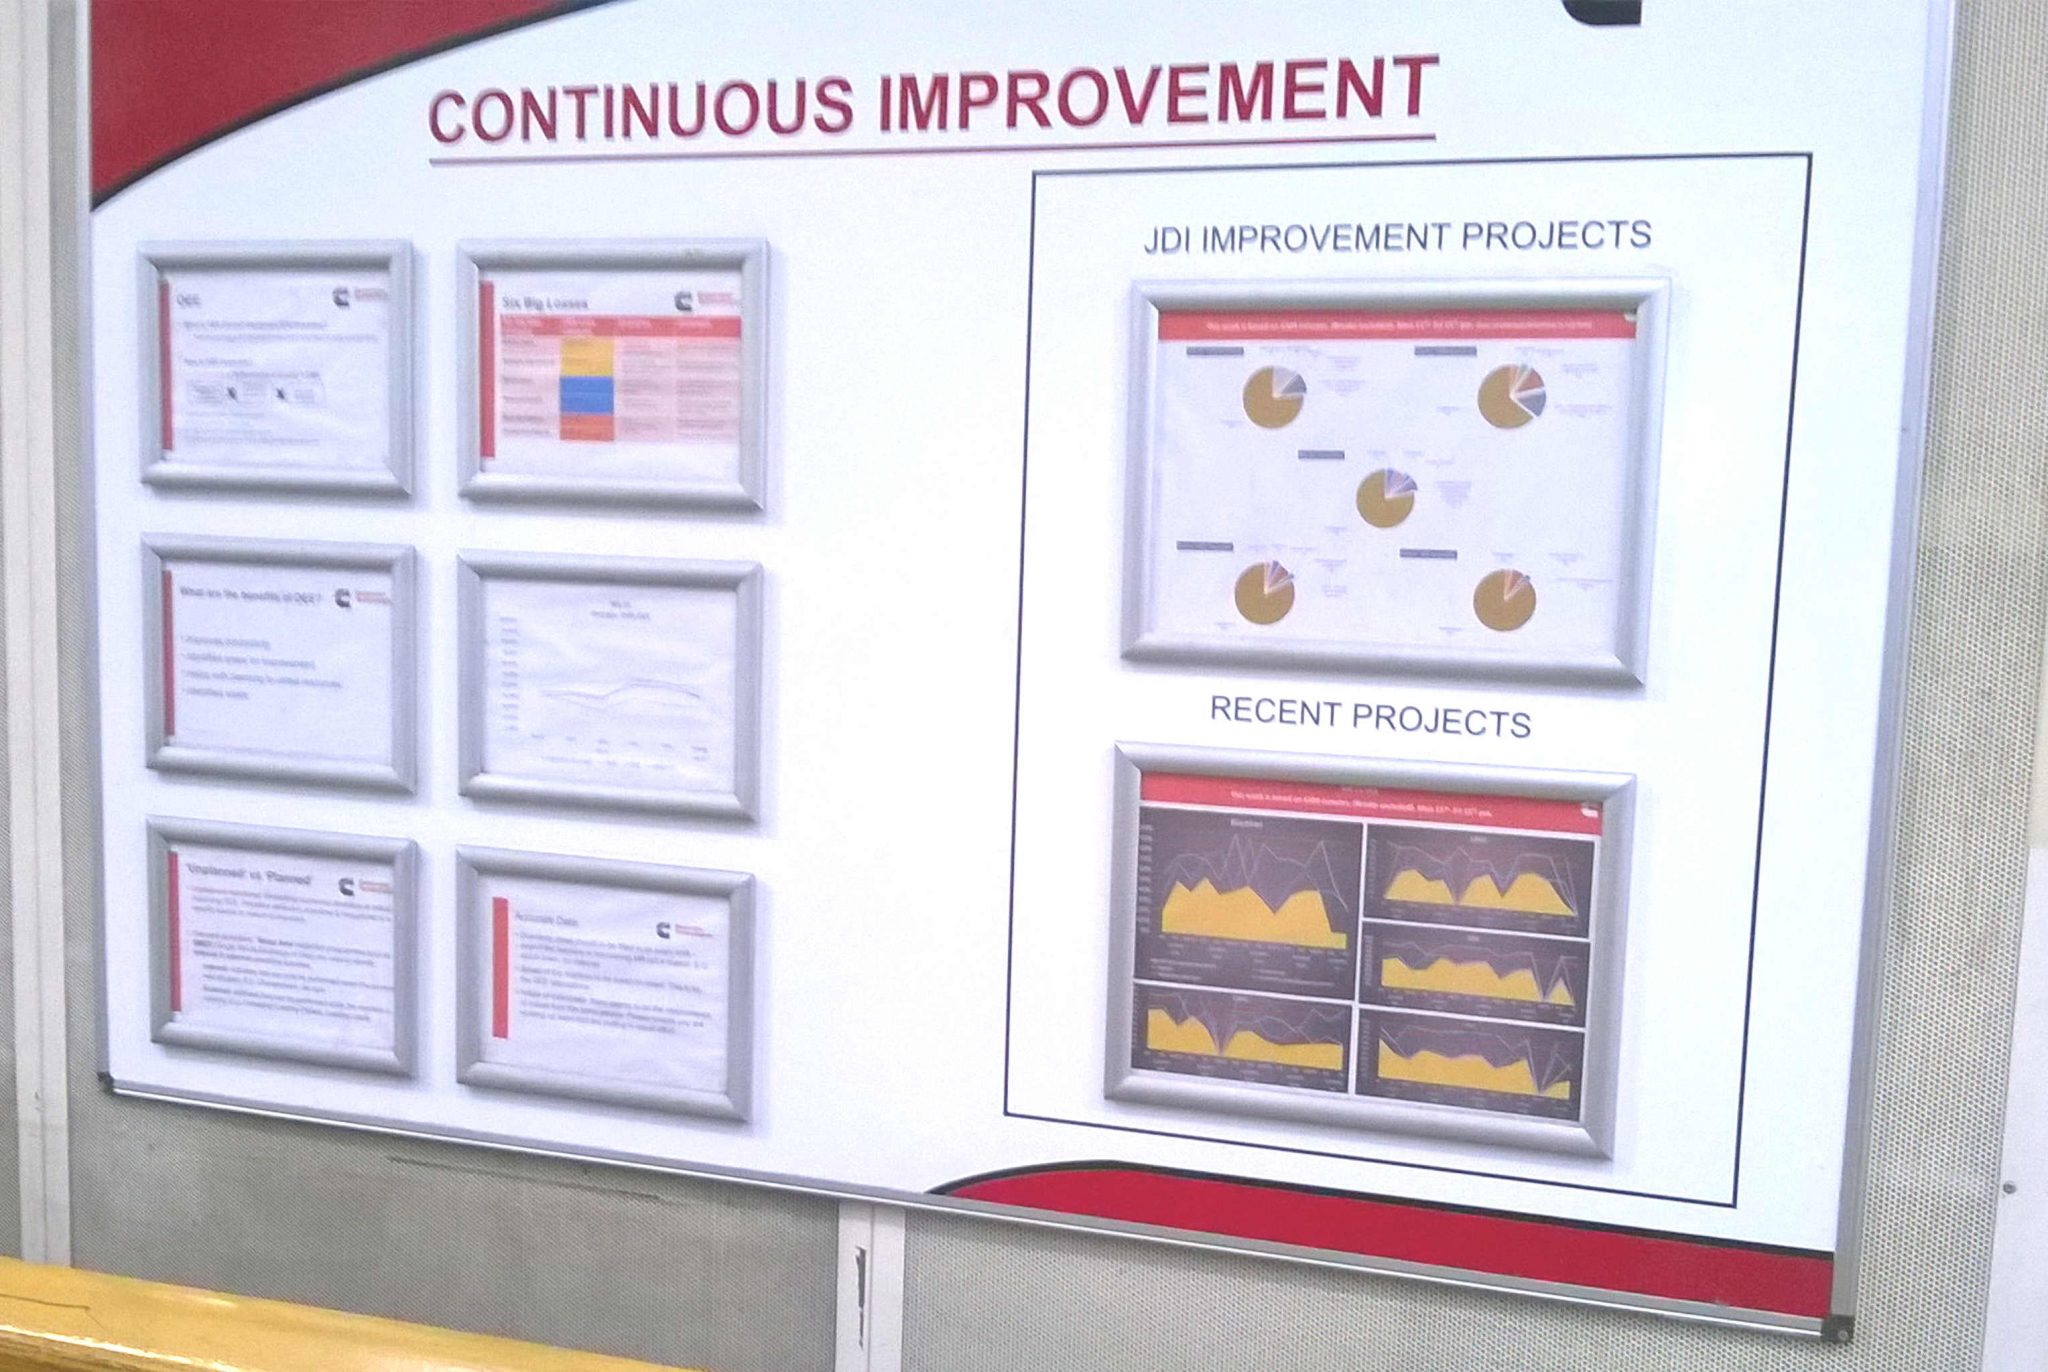 Improvement Possibilities Lean